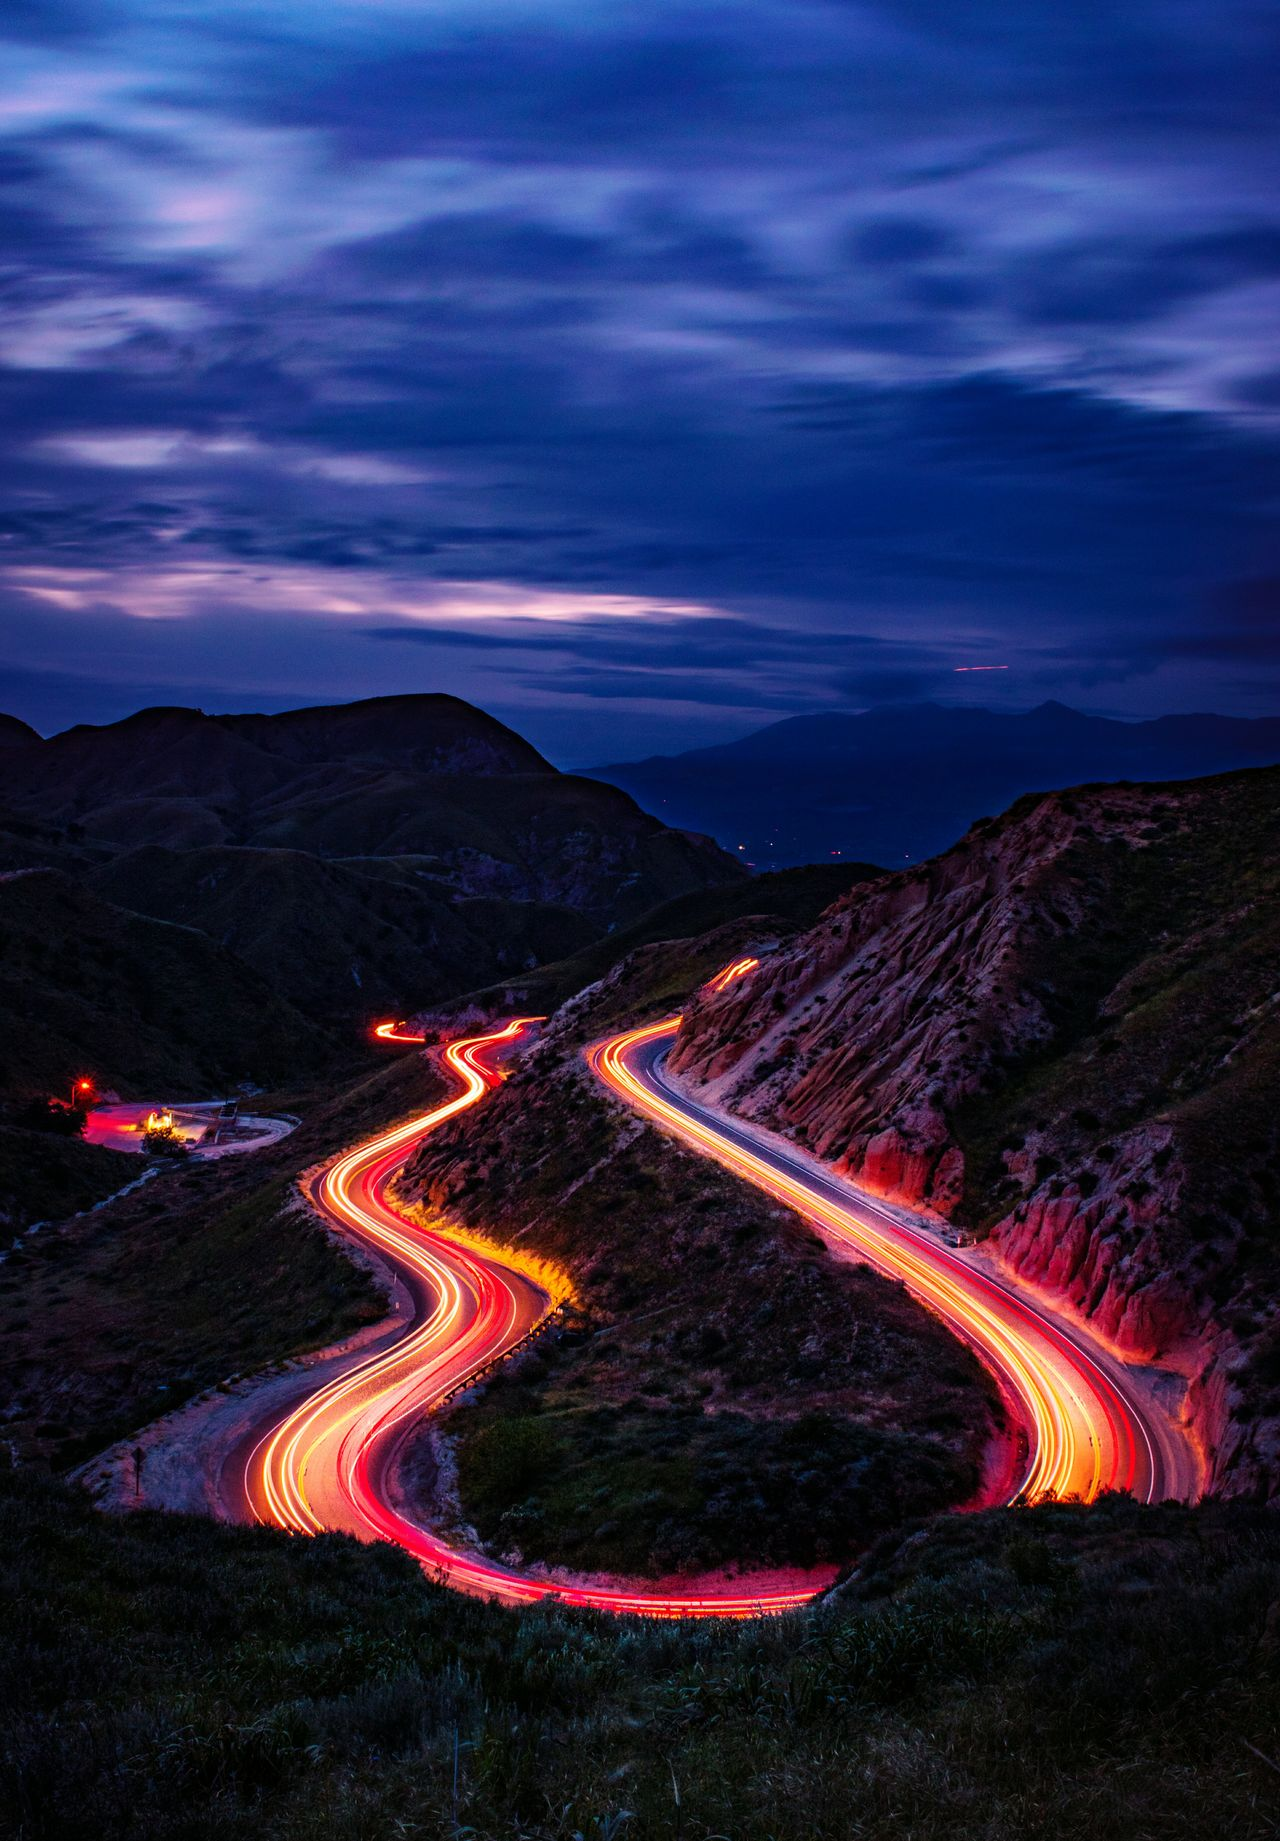 Night Long Exposure Illuminated Light Trail Motion Winding Road Mountain Traffic Speed Cloud - Sky Dramatic Sky Outdoors Road Sky California Coast California Love California Scenics EyeEm Best Shots From My Point Of View Landscape_photography Landscape_Collection Sunsetporn Sunset_captures Landscape